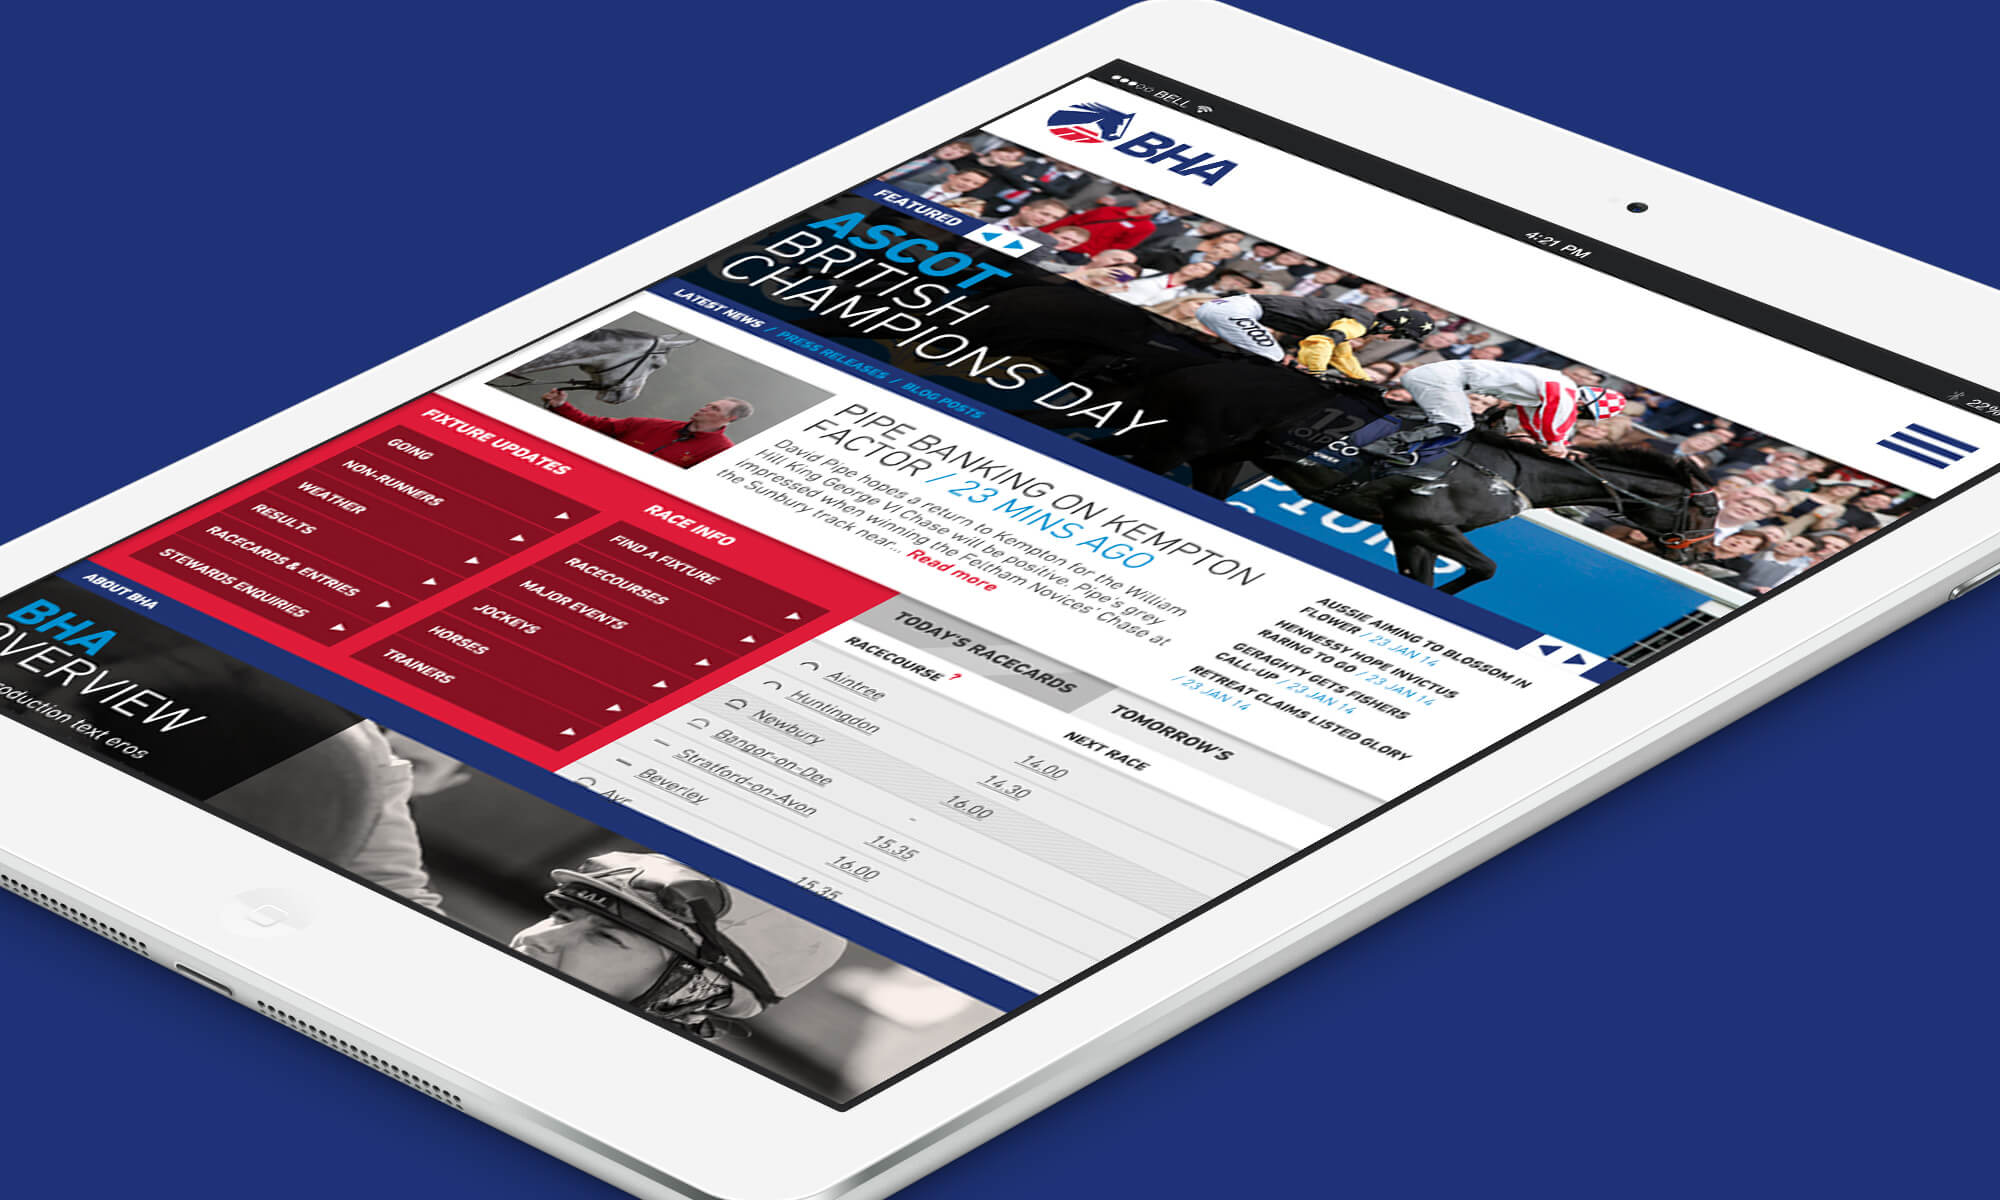 A look at the BHA's new website